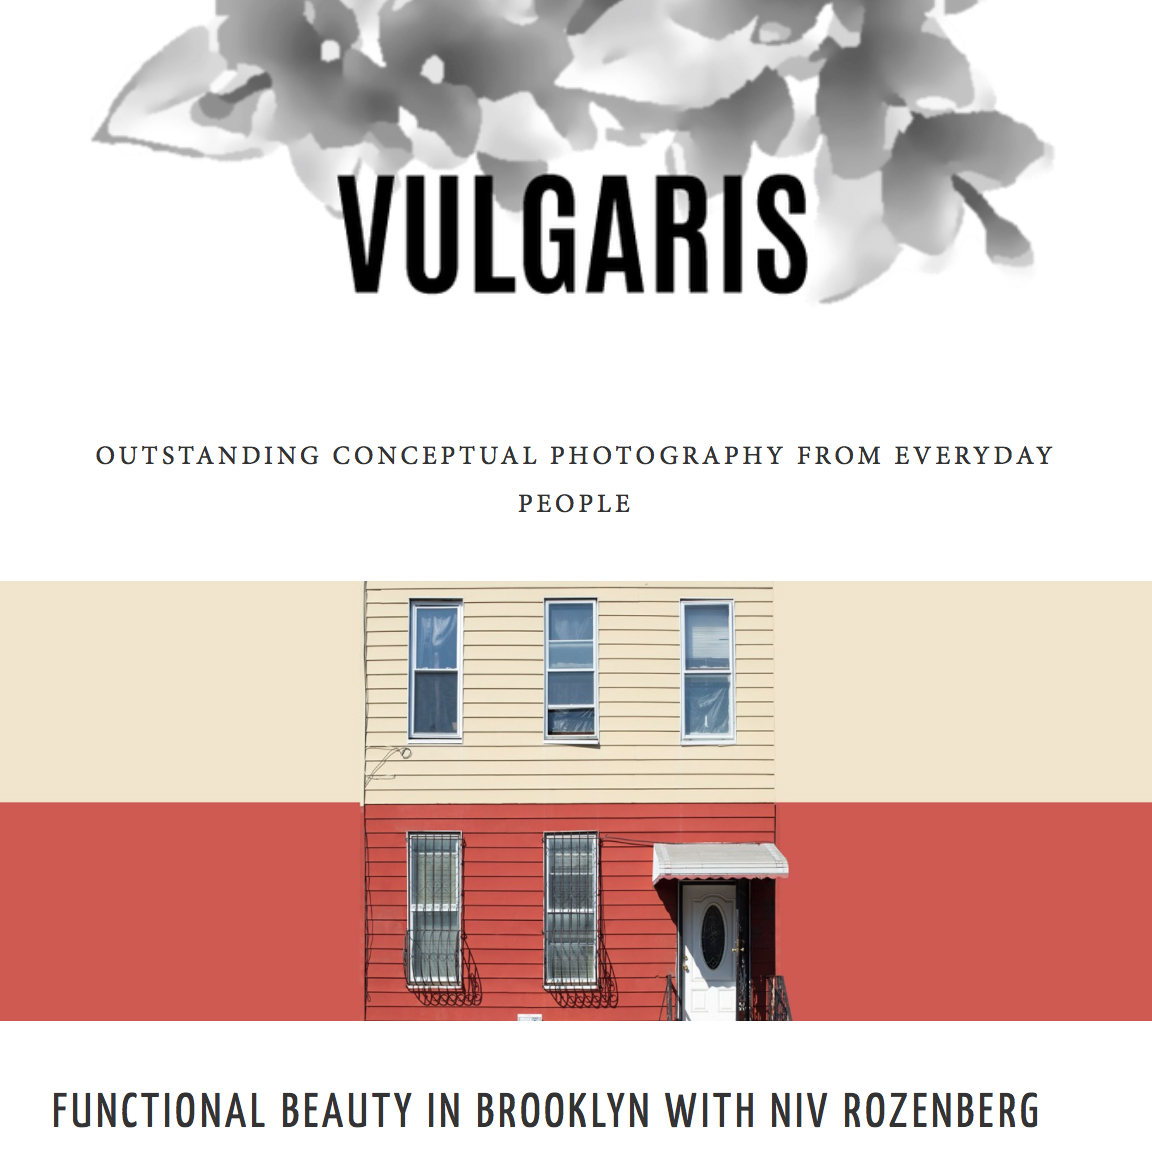 """Interview:VULGARIS MagazineFunctional Beauty in Brooklyn with Niv Rozenberg - """"After moving to New York to further pursue an instruction in photography that began in Jerusalem, Niv Rozenberg began photographing his immediate surroundings in the Brooklyn neighbourhood of Bushwick. The series that grew out of these snippets is called Boswijck, a reference to Bushwick's historic name: """"little town in the woods."""" Settled by the Dutch East India Company but soon annexed by the English, Bushwick's tableau over the succeeding 334 years resembles that of many New York neighbourhoods…"""""""